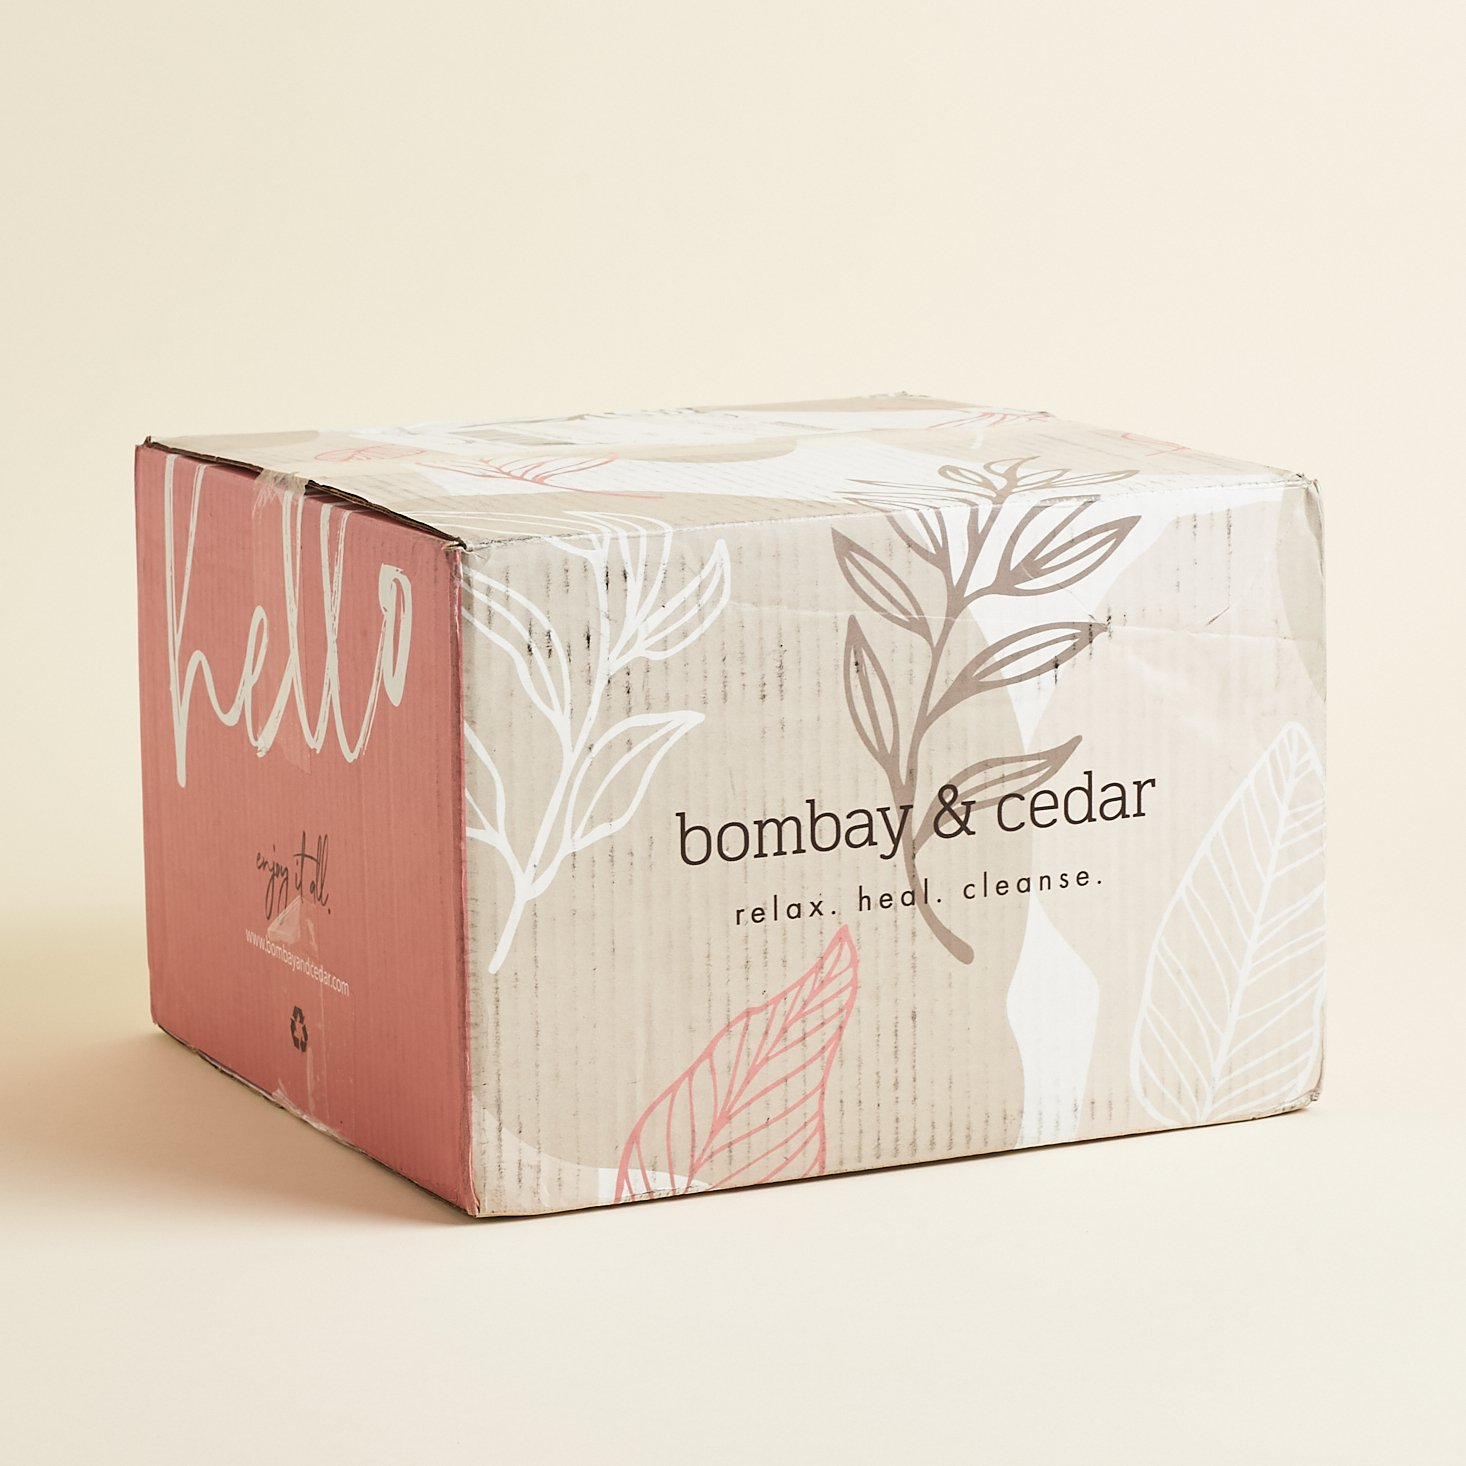 Bombay & Cedar Limited Edition Box Review – Spring/Summer 2020